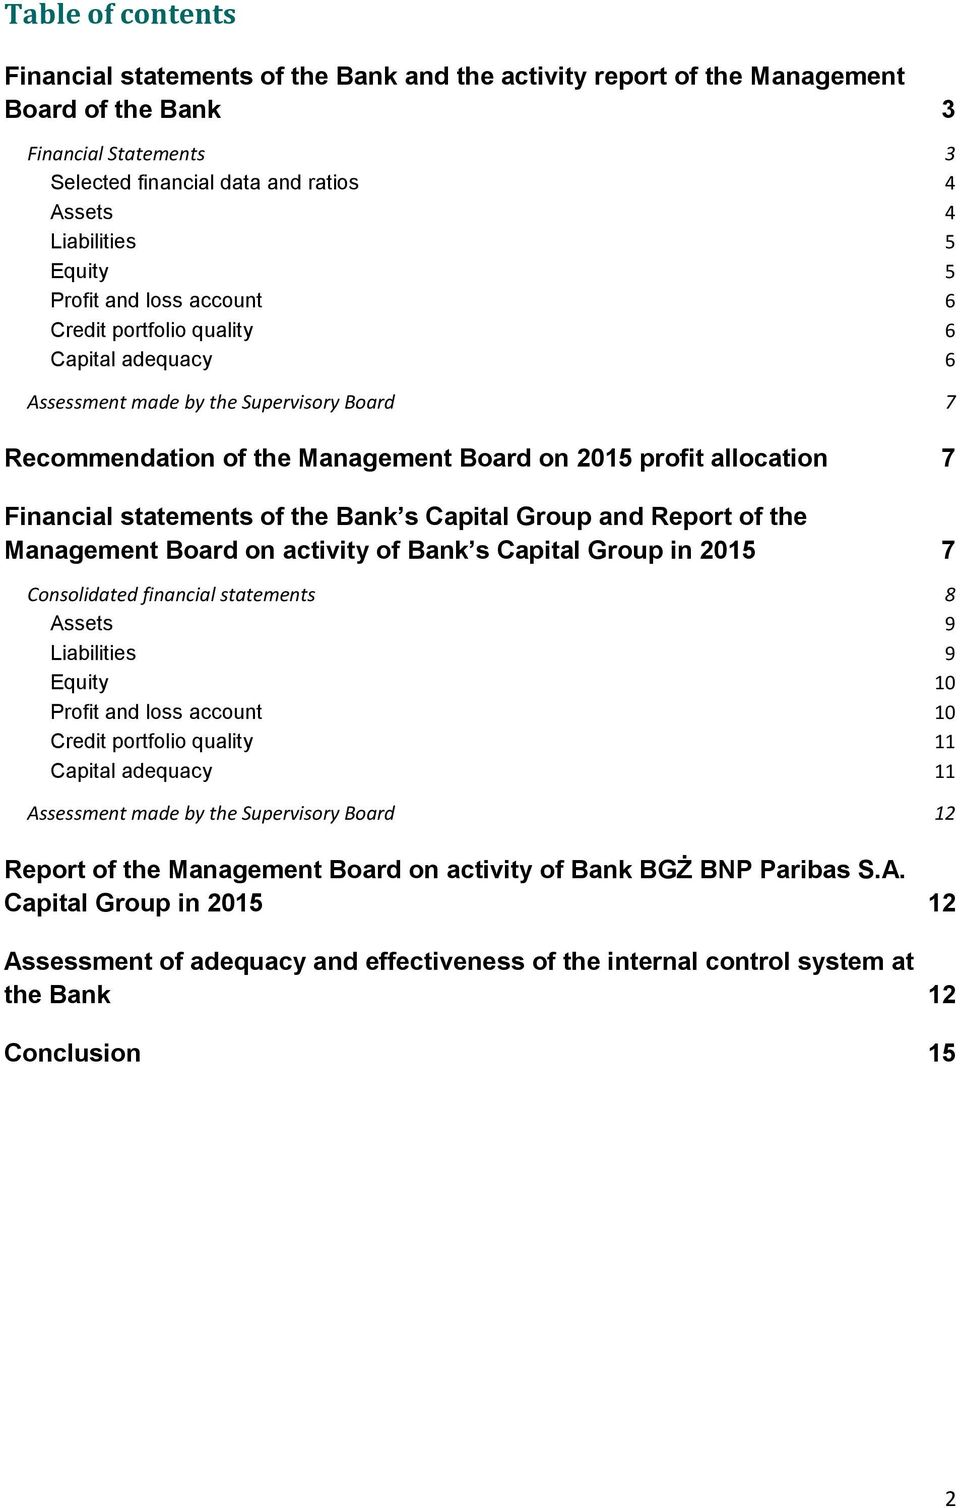 Financial statements of the Bank s Capital Group and Report of the Management Board on activity of Bank s Capital Group in 2015 7 Consolidated financial statements 8 Assets 9 Liabilities 9 Equity 10